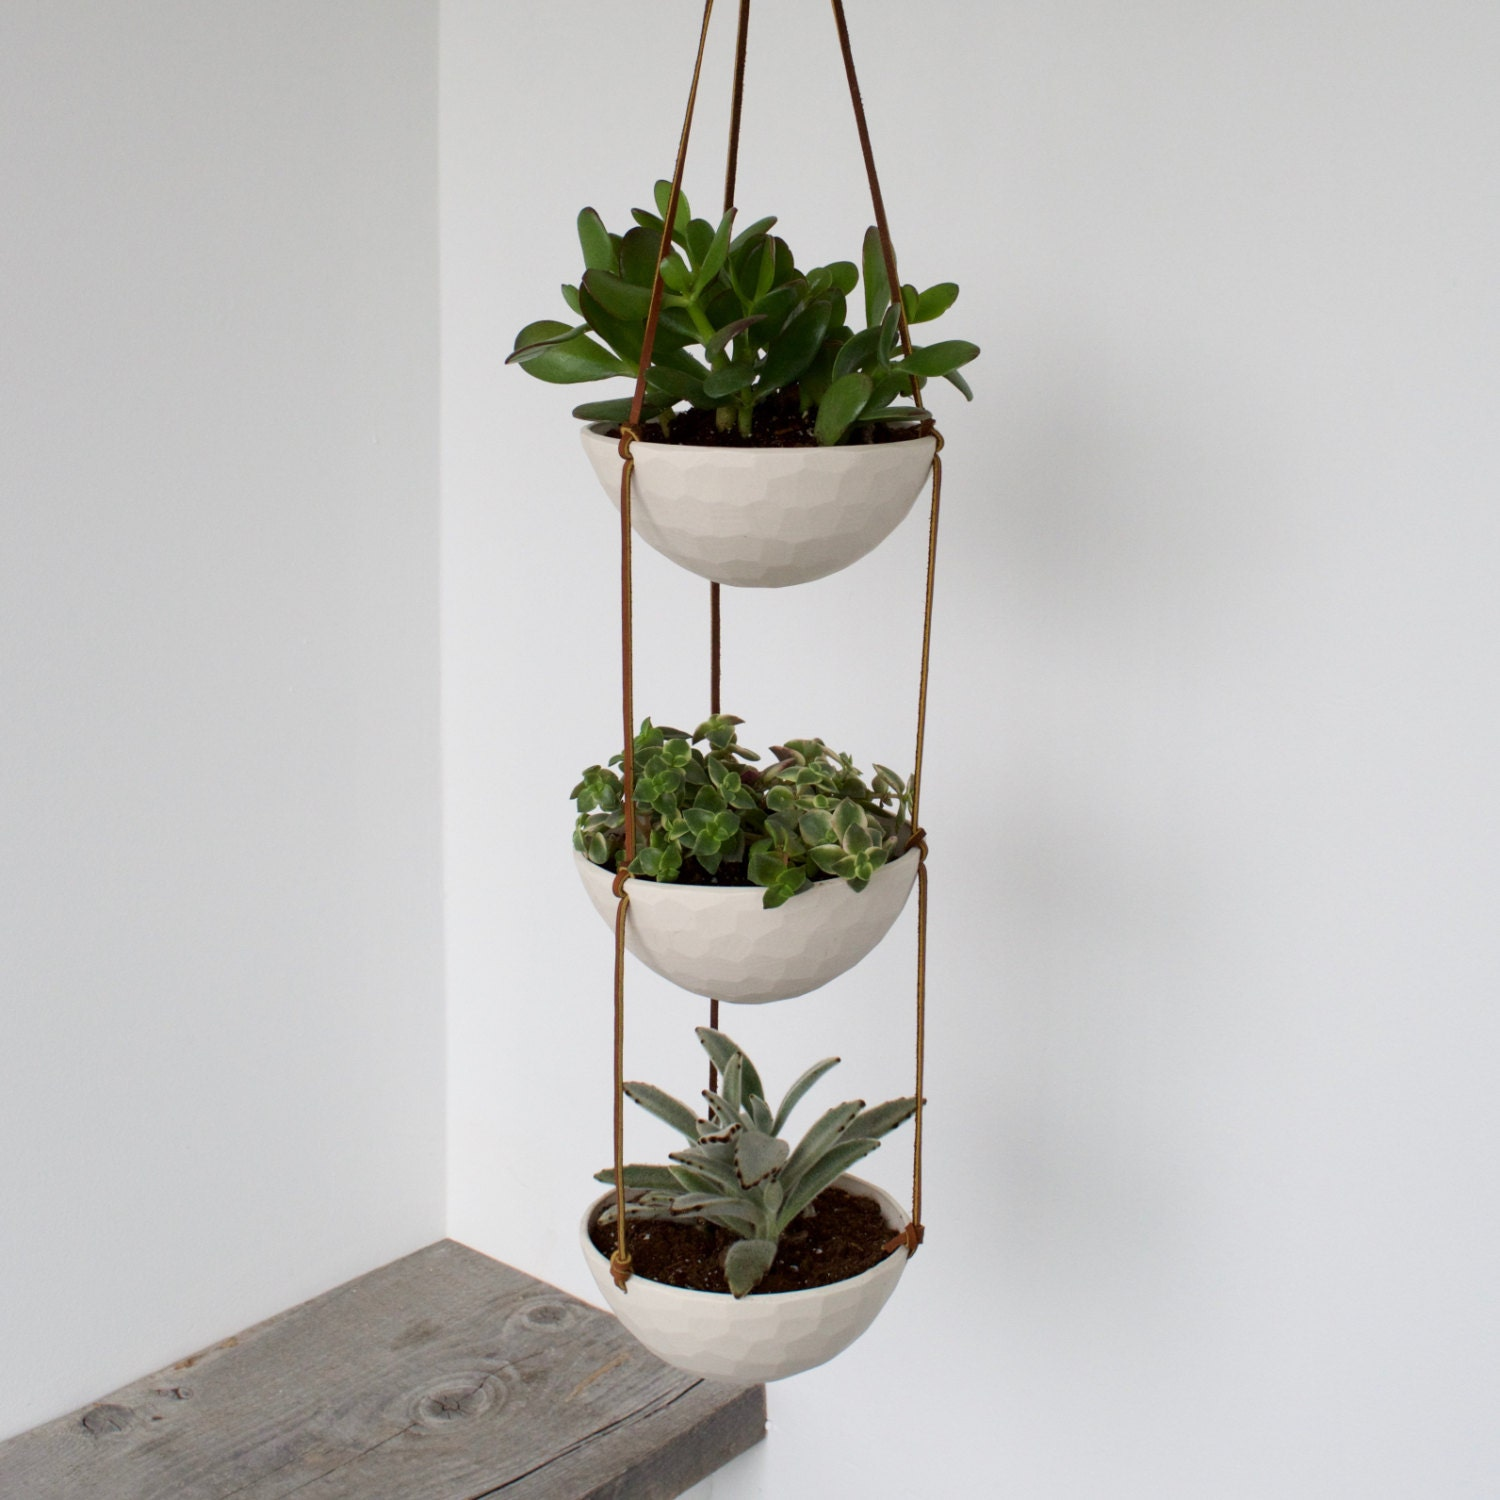 3 Tier Hanging Succulent Planter Geometric Faceted Or Smooth Finish